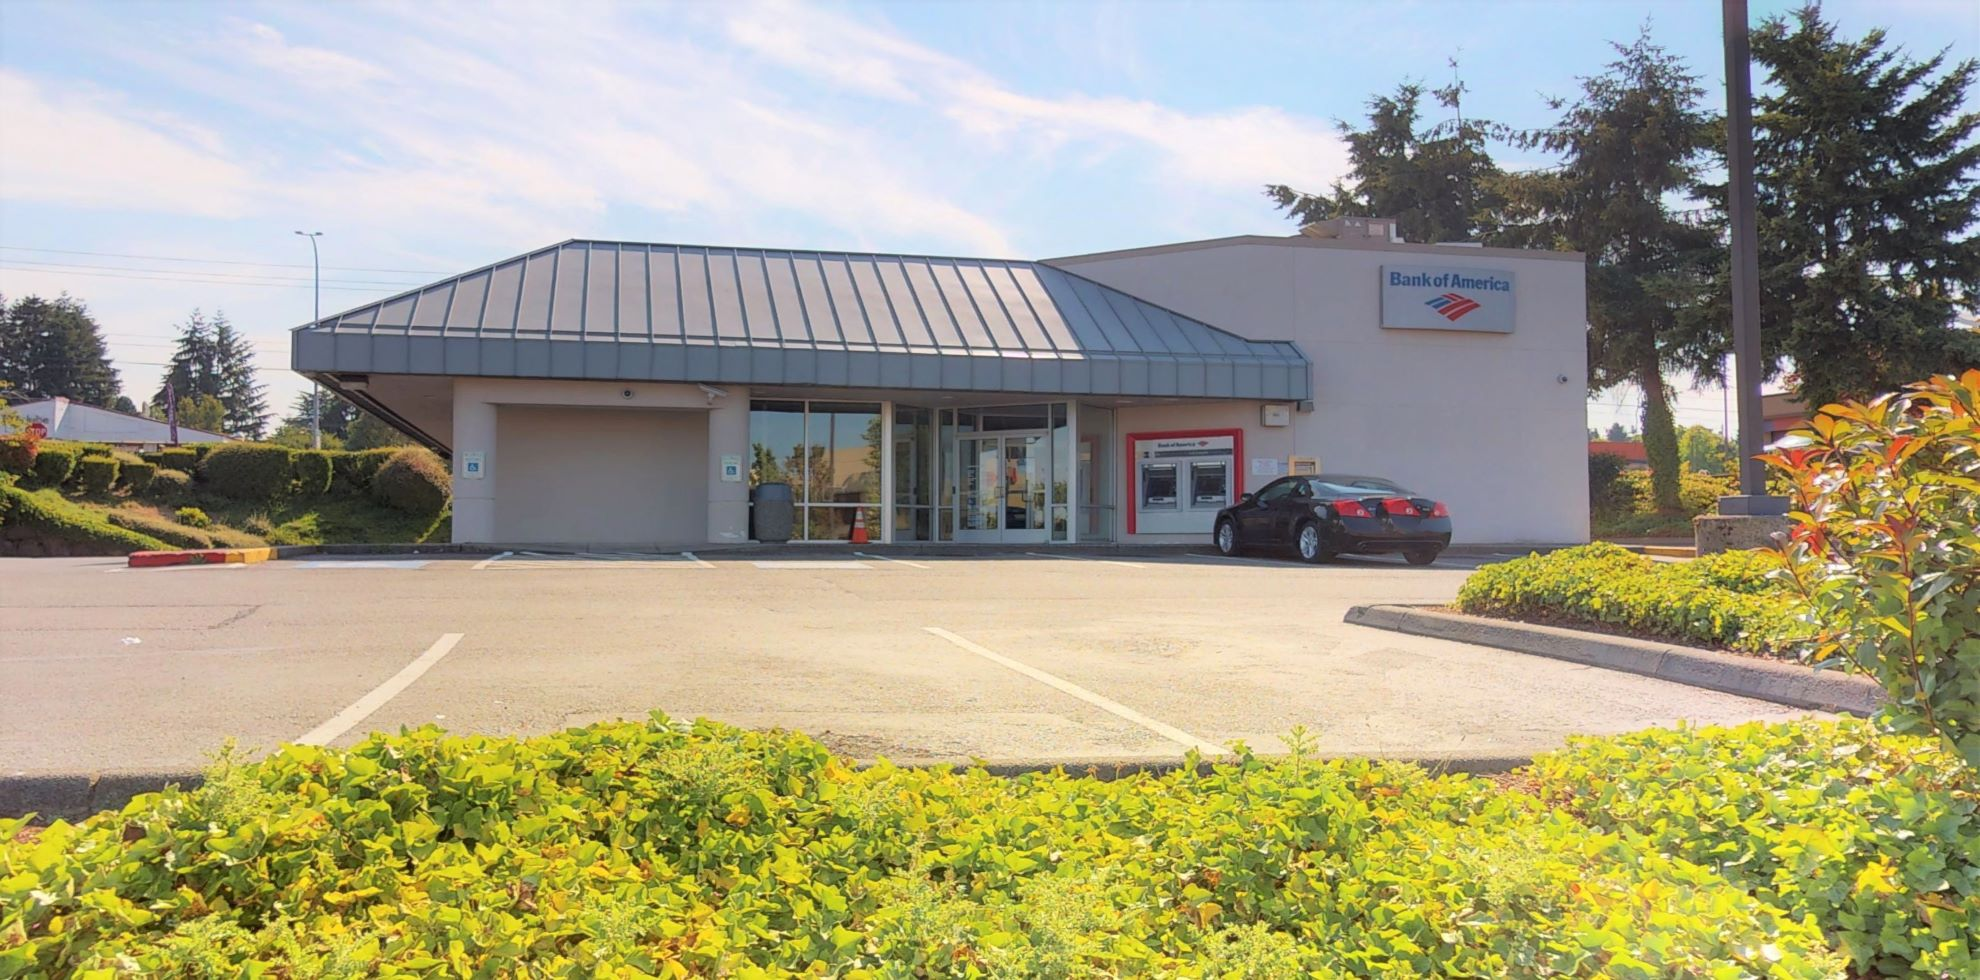 Bank of America financial center with walk-up ATM | 17803 108th Ave SE, Renton, WA 98055